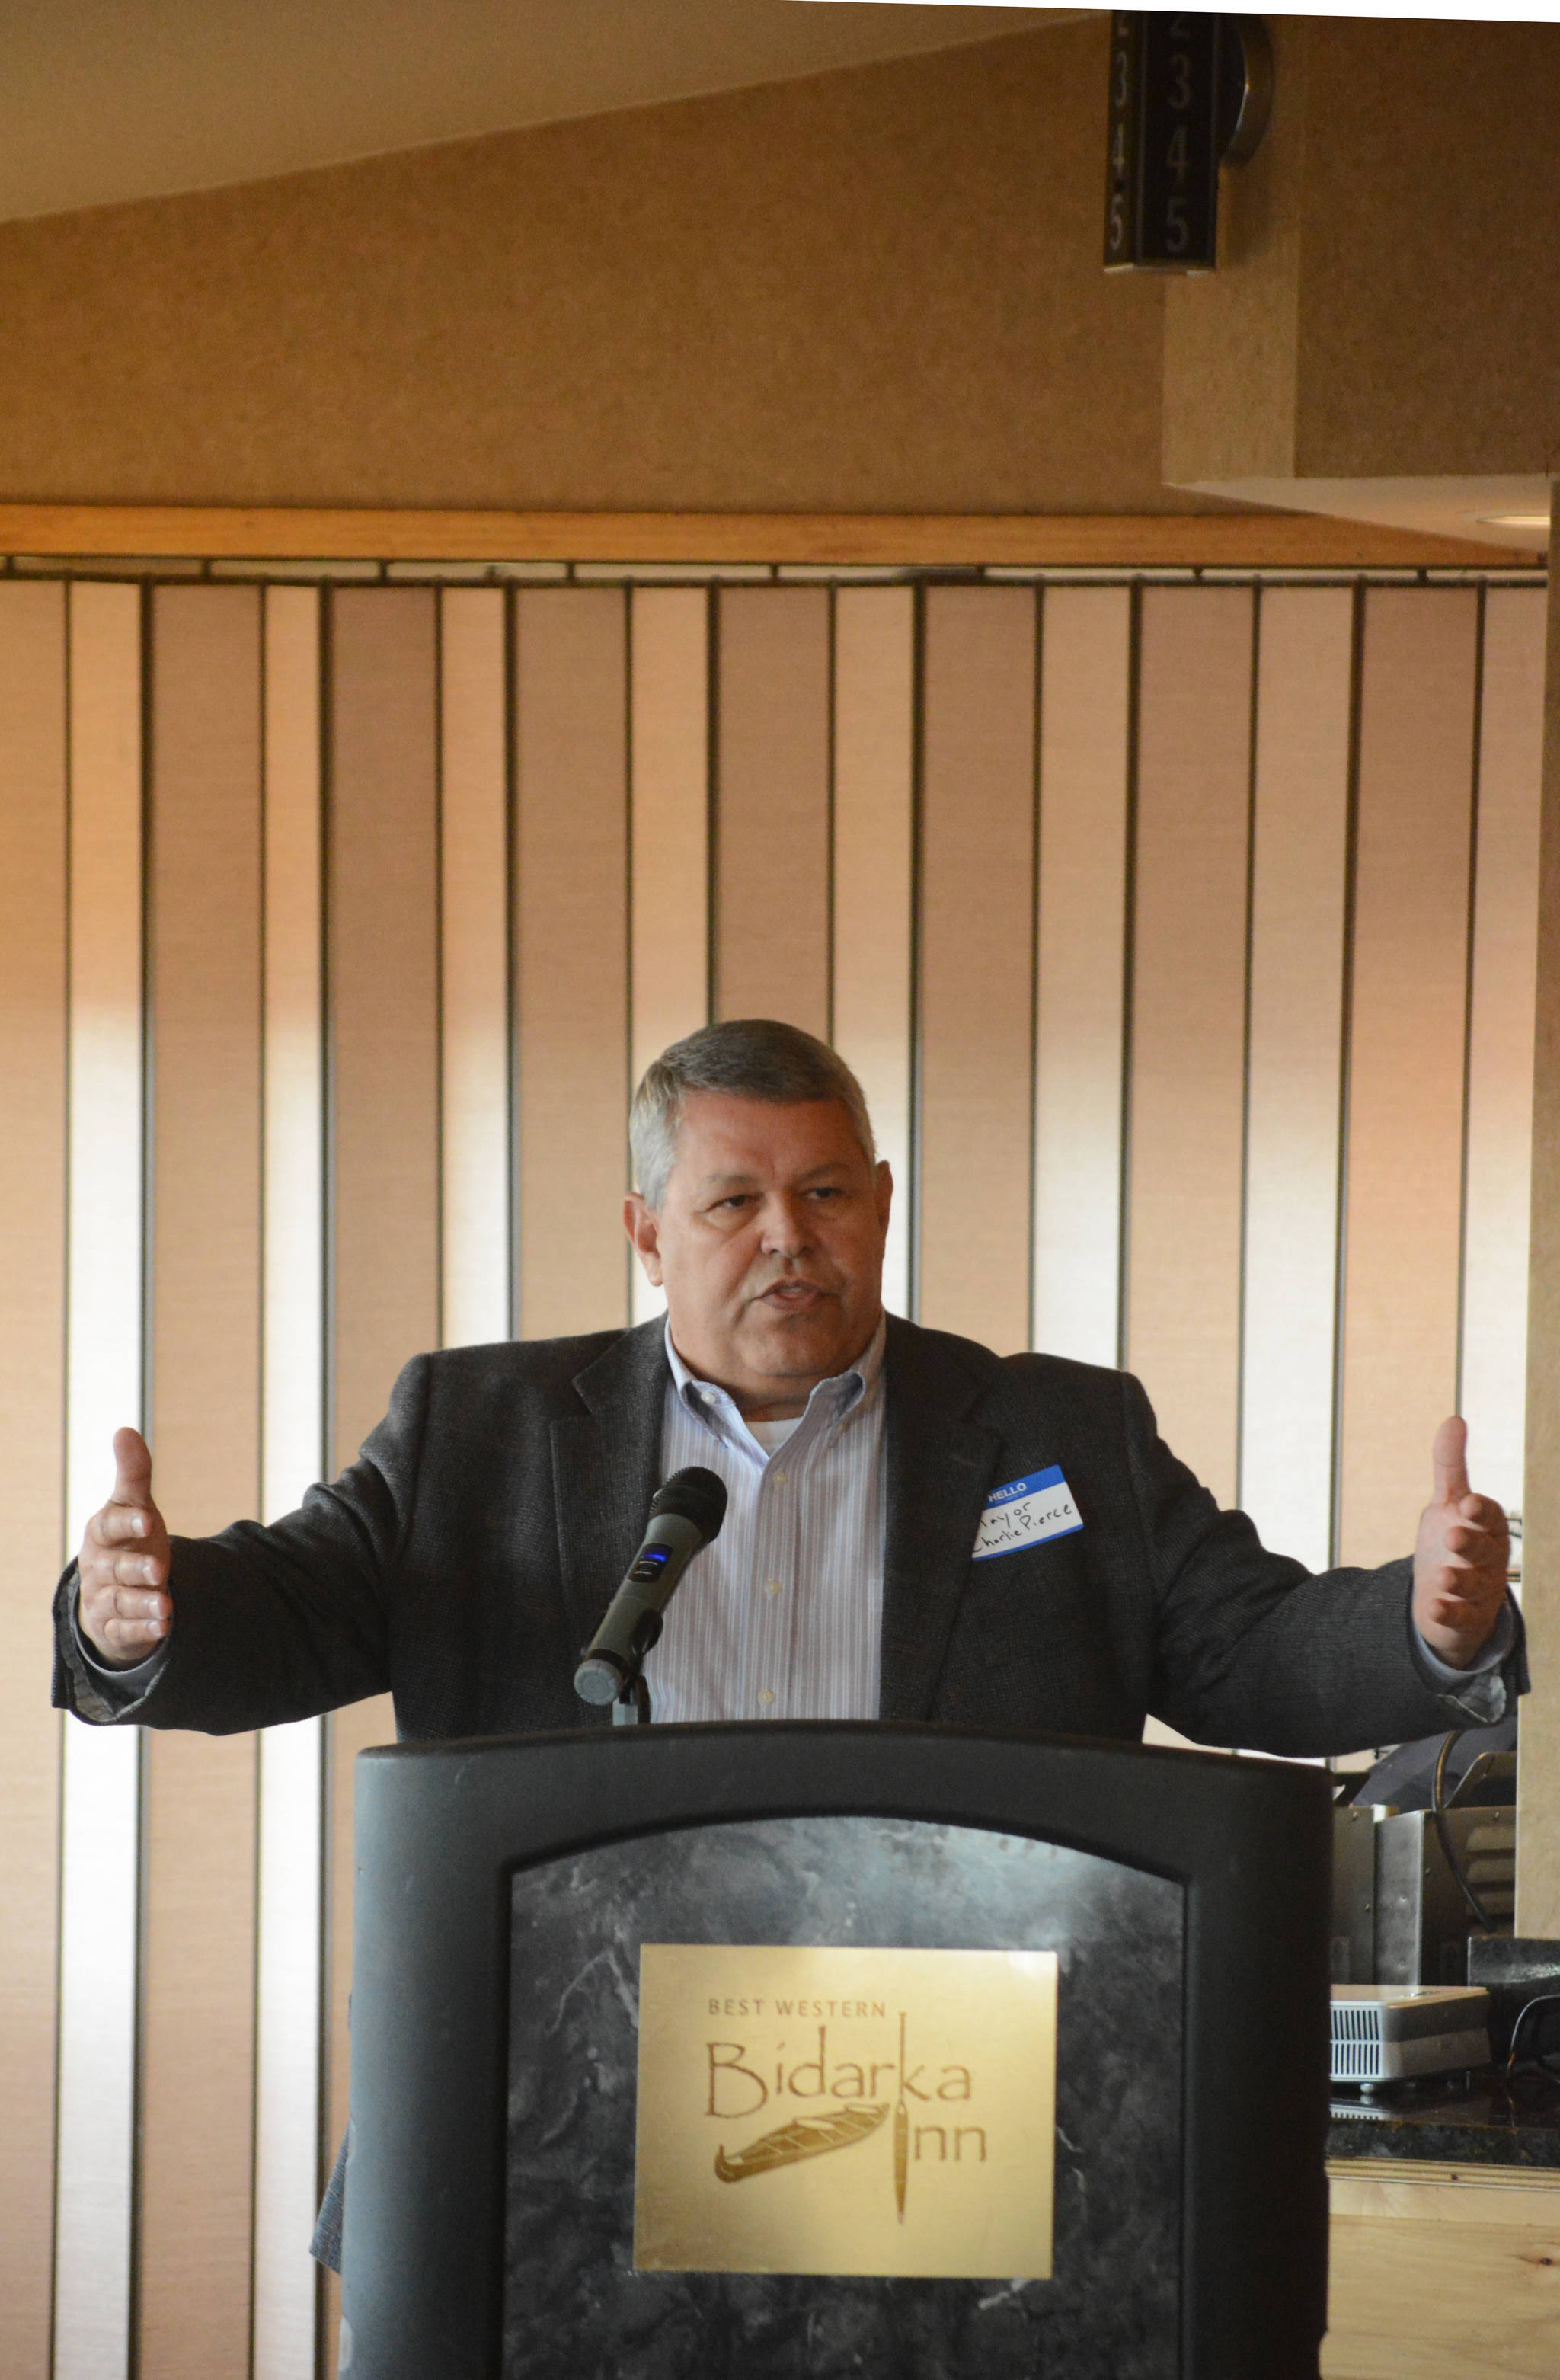 Kenai Peninsula Borough Mayor Charlie Pierce speaks at the Homer Chamber of Commerce and Visitor Center's luncheon on Tuesday, May 8, 2018, at the Best Western Bidarka Inn in Homer, Alaska. (Photo by Michael Armstrong/Homer News)